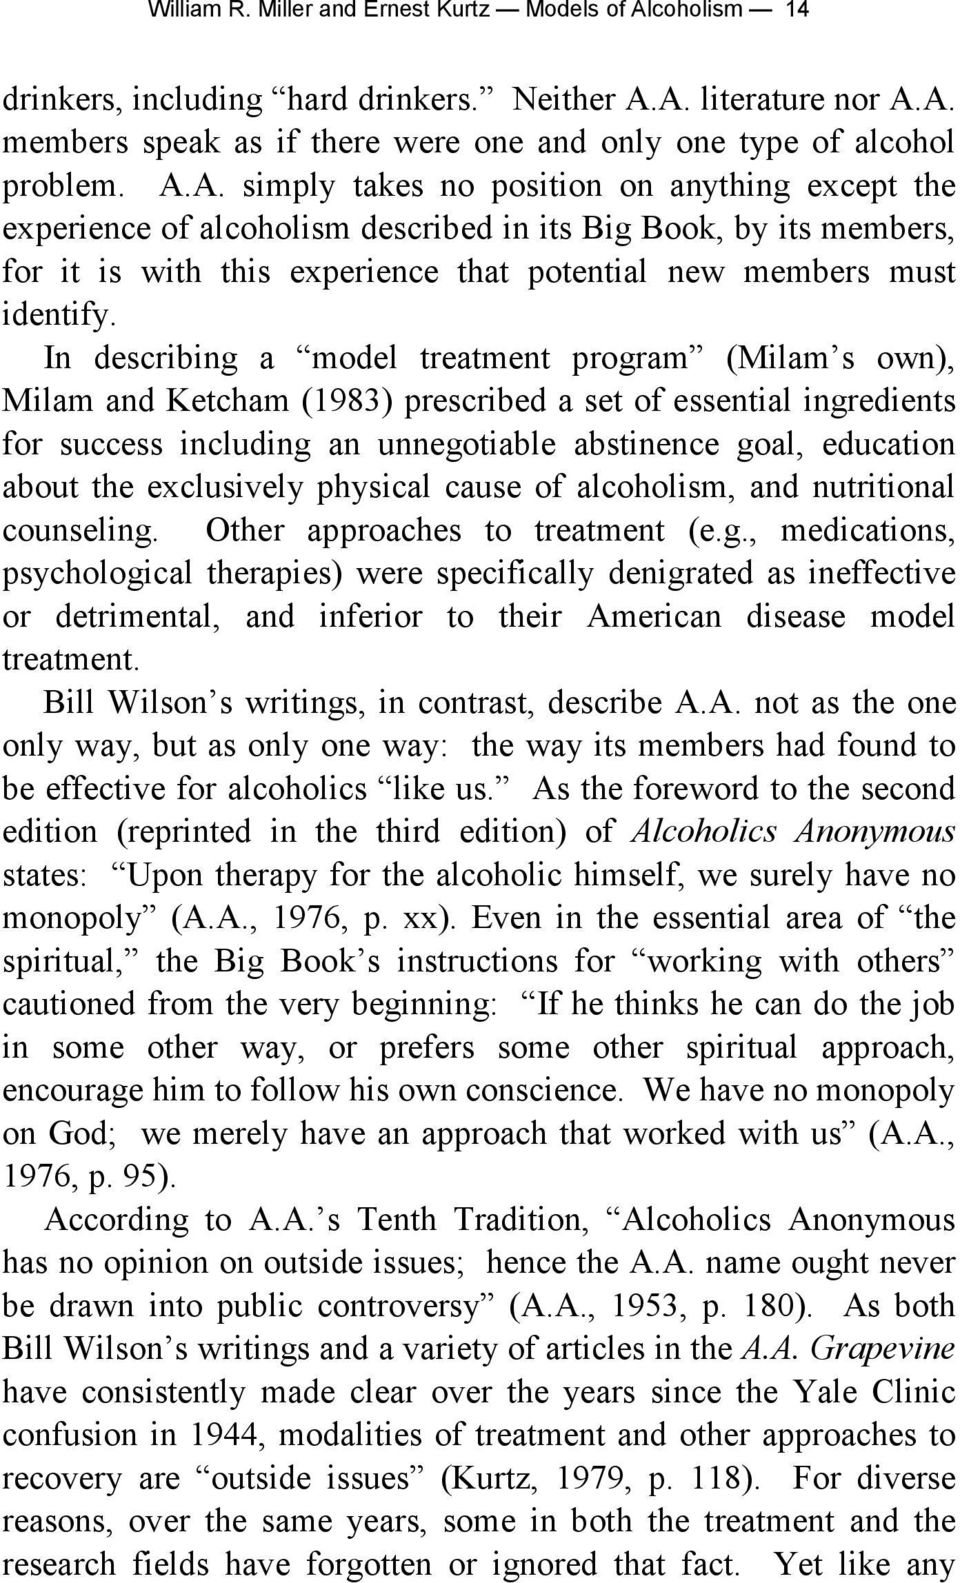 In describing a model treatment program (Milam s own), Milam and Ketcham (1983) prescribed a set of essential ingredients for success including an unnegotiable abstinence goal, education about the